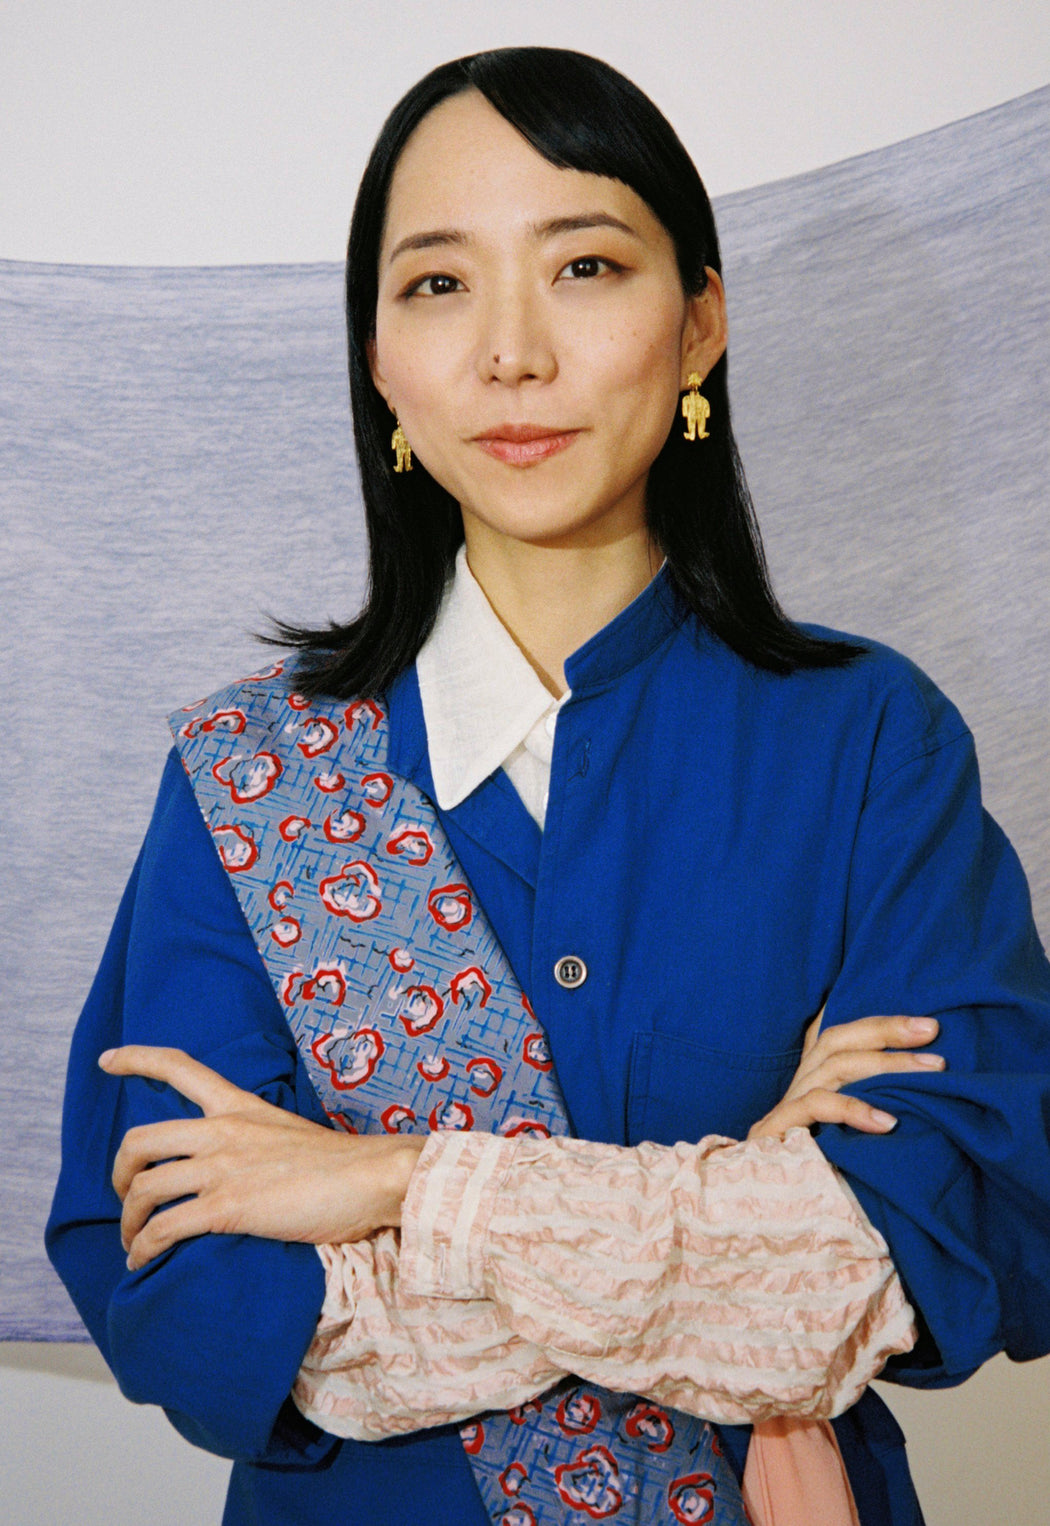 APRÈS SKI TETE D'ETOILE EARRINGS